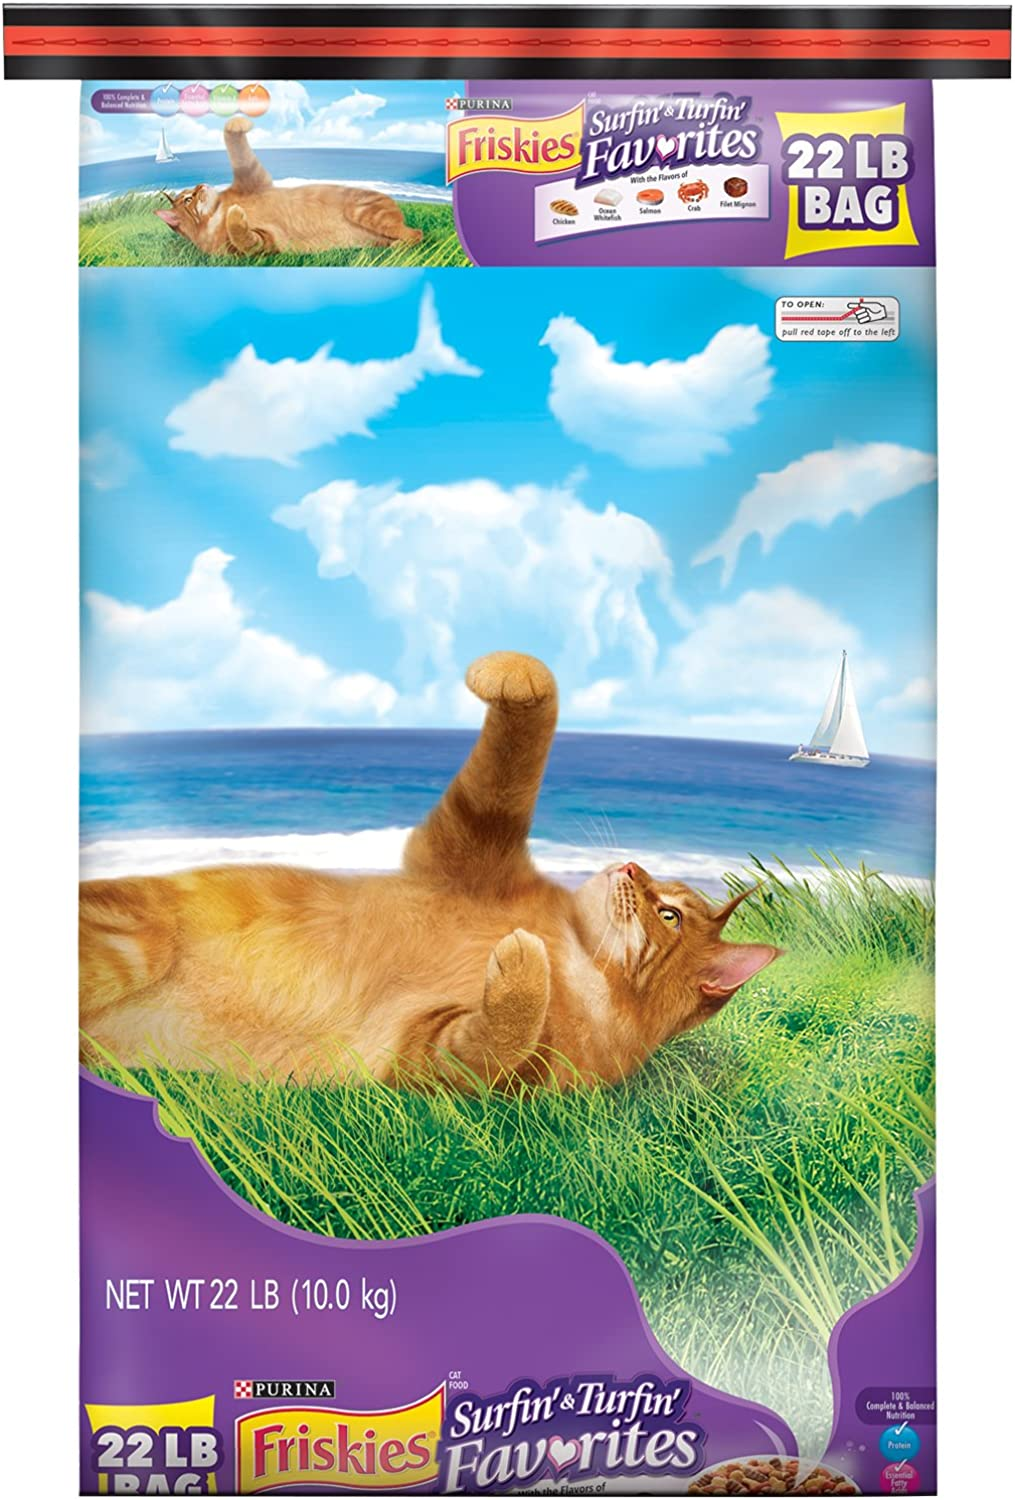 Friskies Dry Cat Food, Surfin' and Turfin' Favorites, 22Pound Bag, Pack of 1